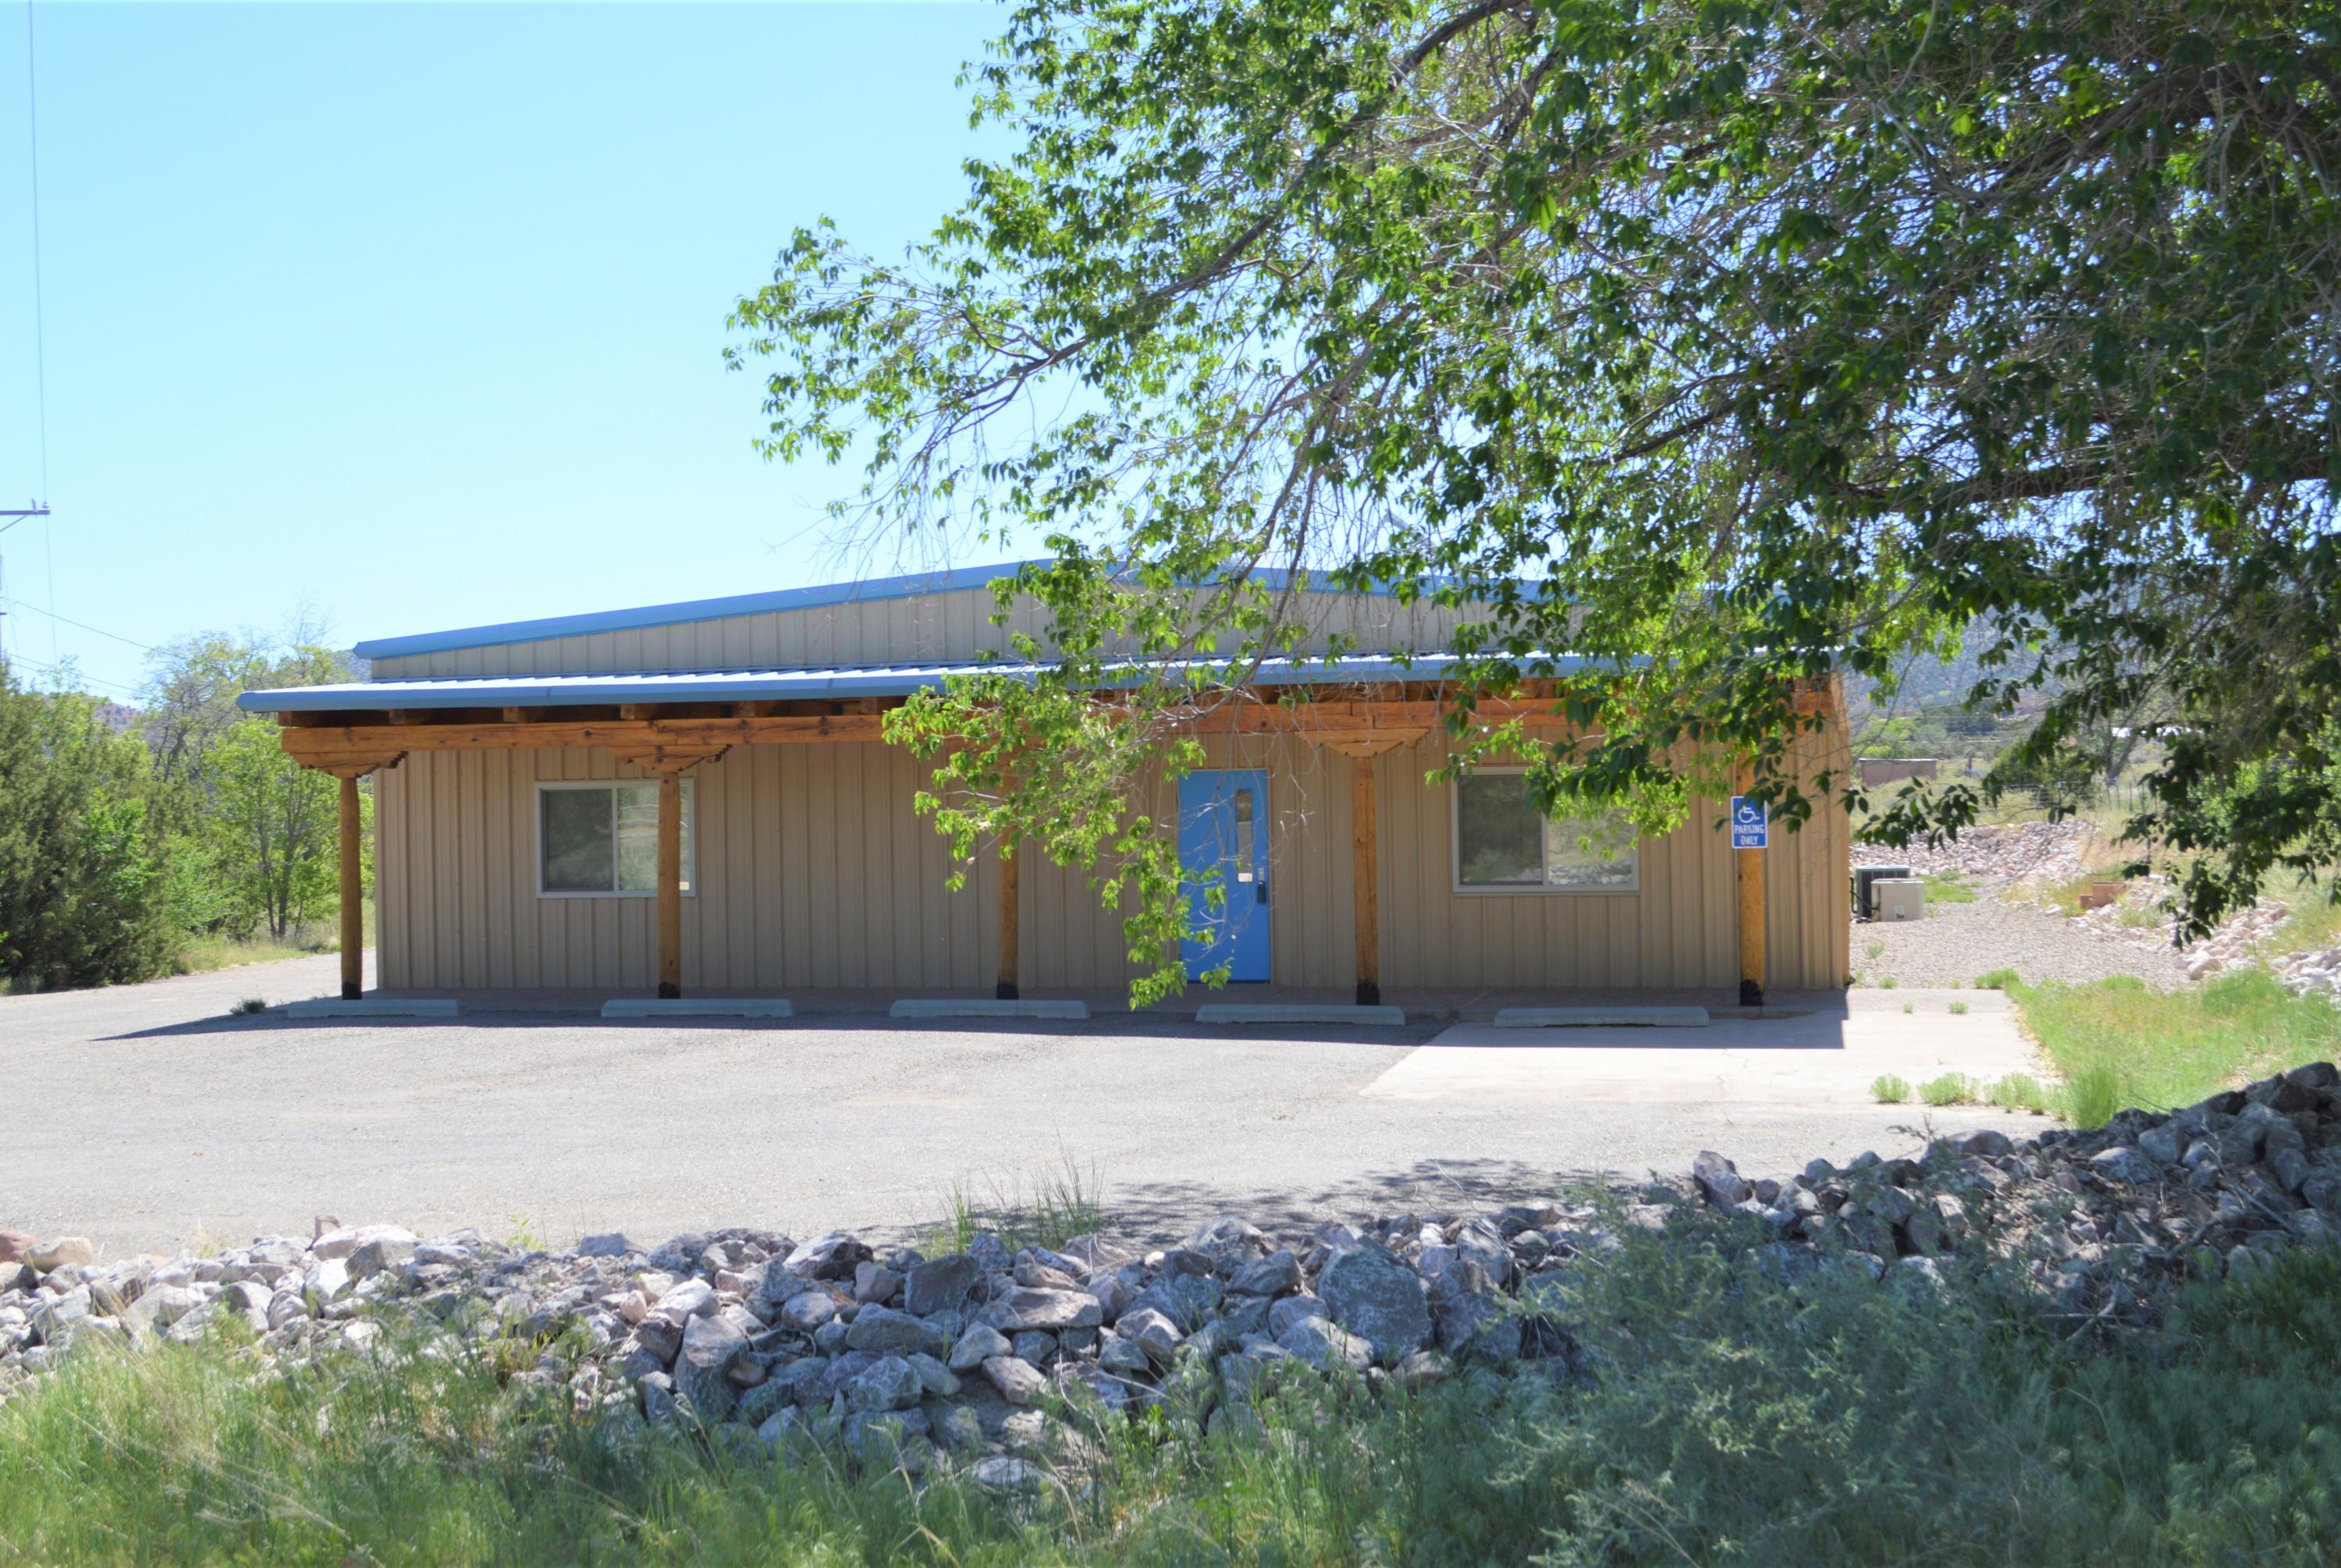 6 CAMINO DE LOS DESMONTES, Placitas, NM 87043 - Placitas, NM real estate listing